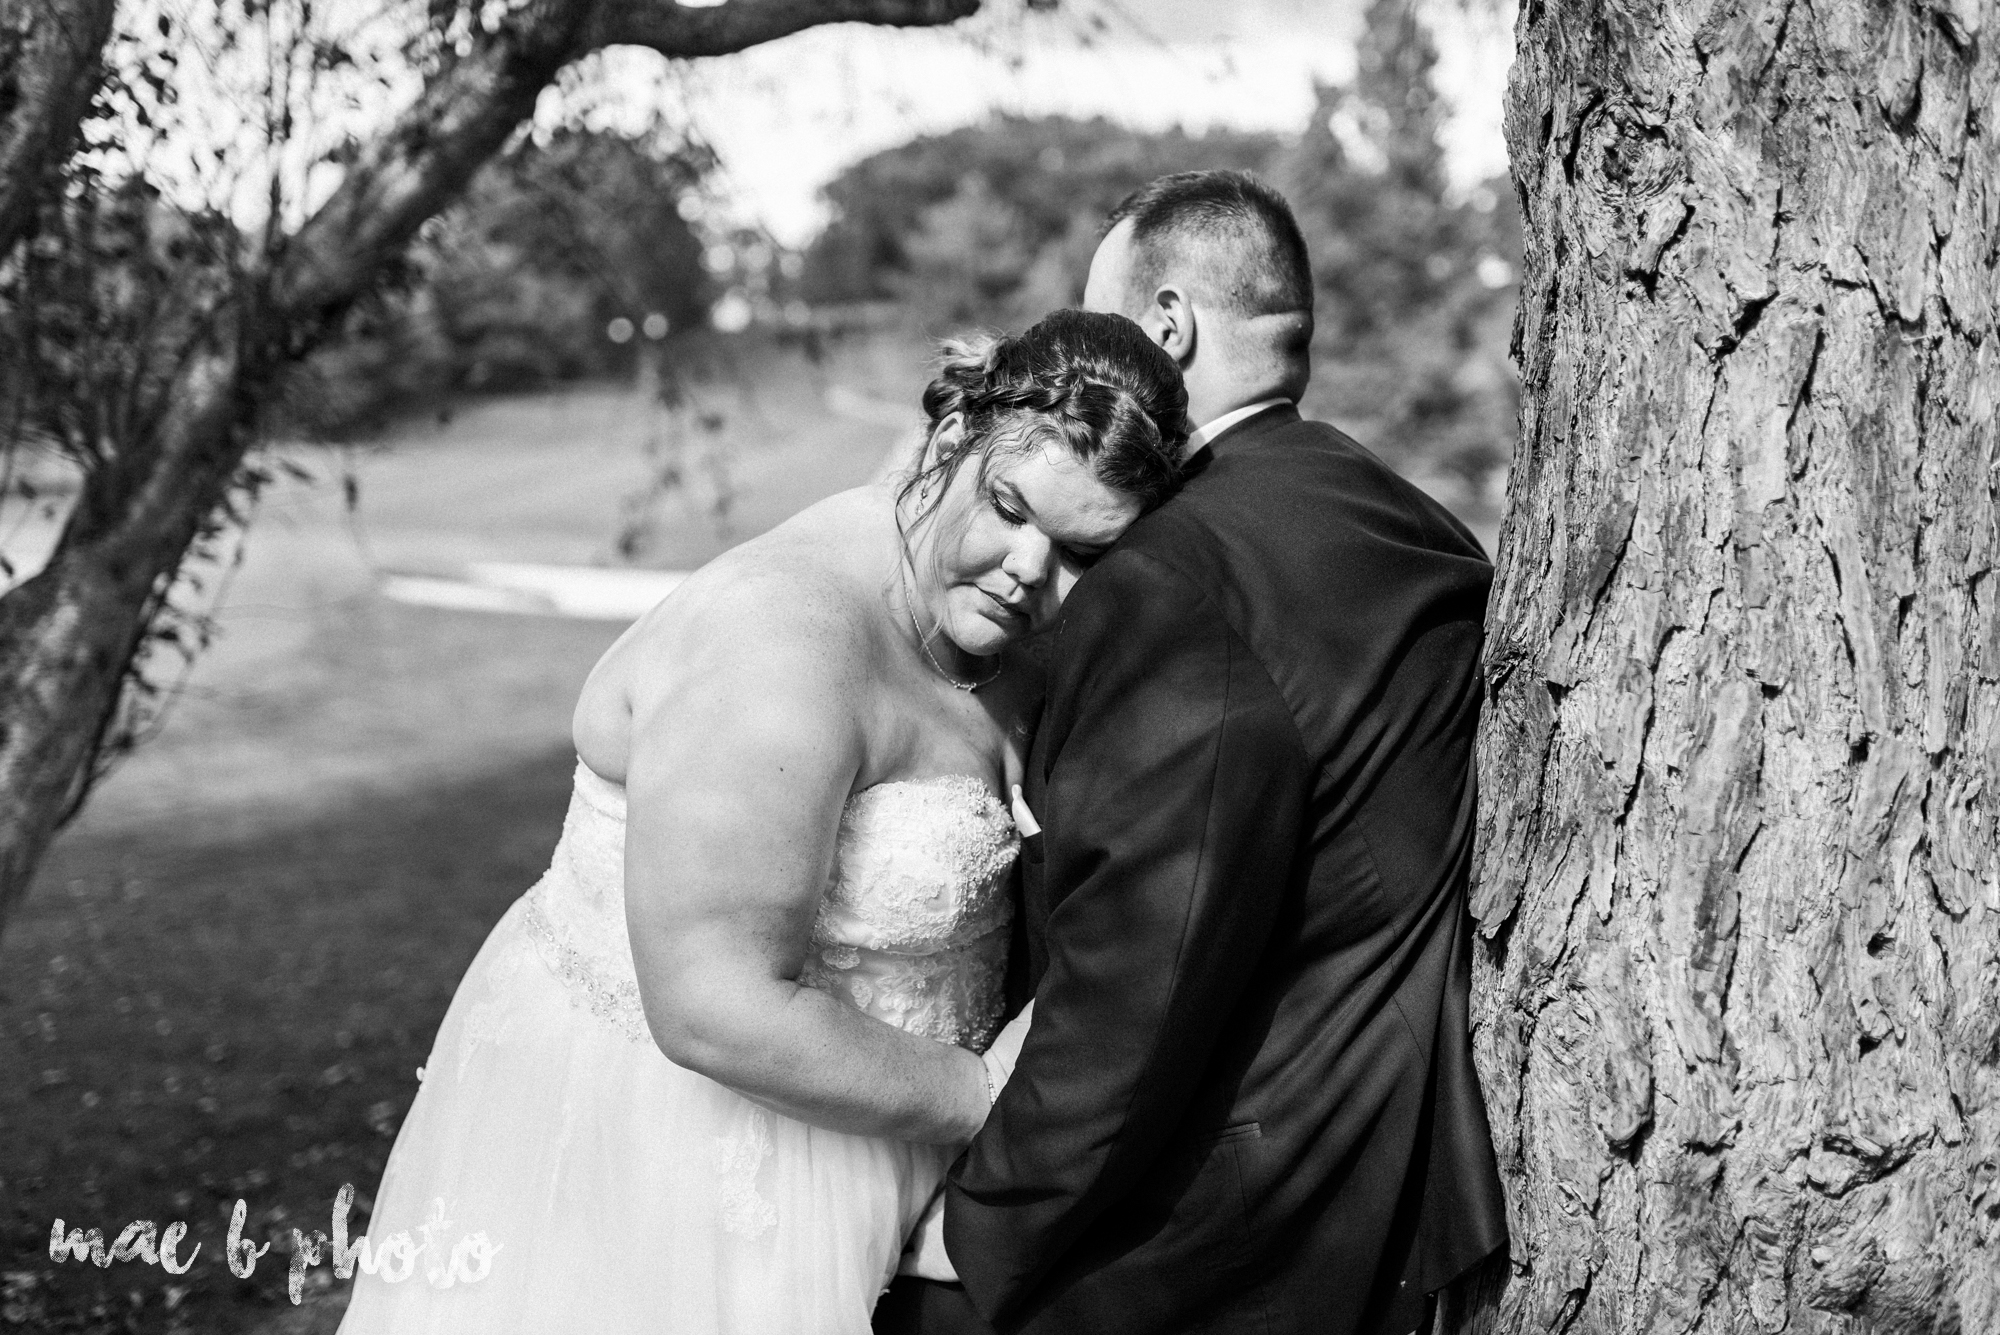 Kristina and ryan's personal vintage glam fall wedding at disalvo's station restaurant and the arnold palmer latrobe country club in latrobe, pa photographed by youngstown wedding photographer mae b photo-43.jpg